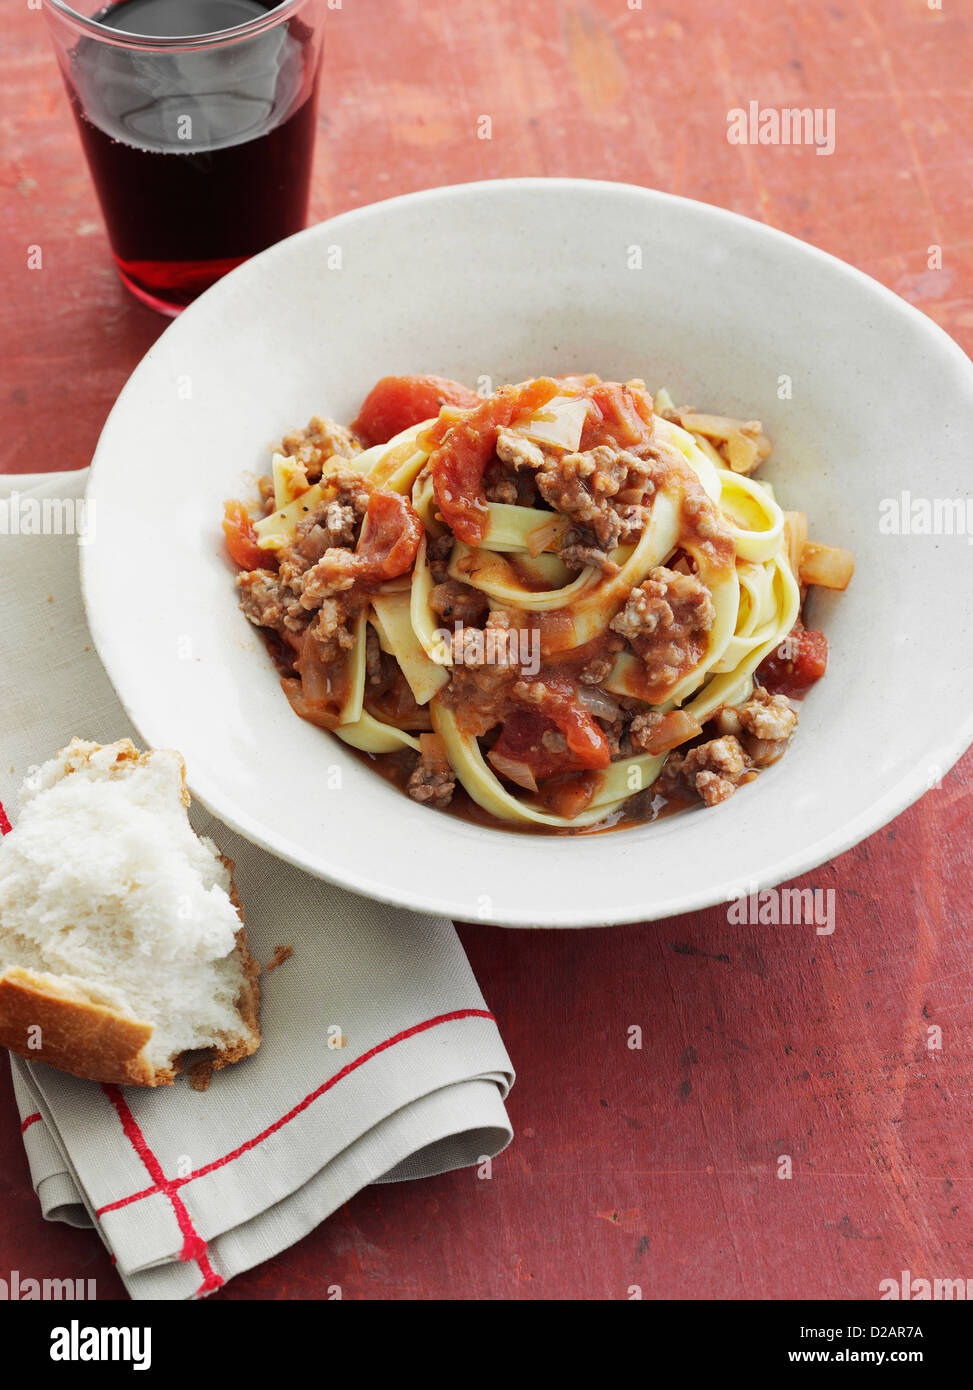 Bowl of fettuccine bolognese with bread - Stock Image